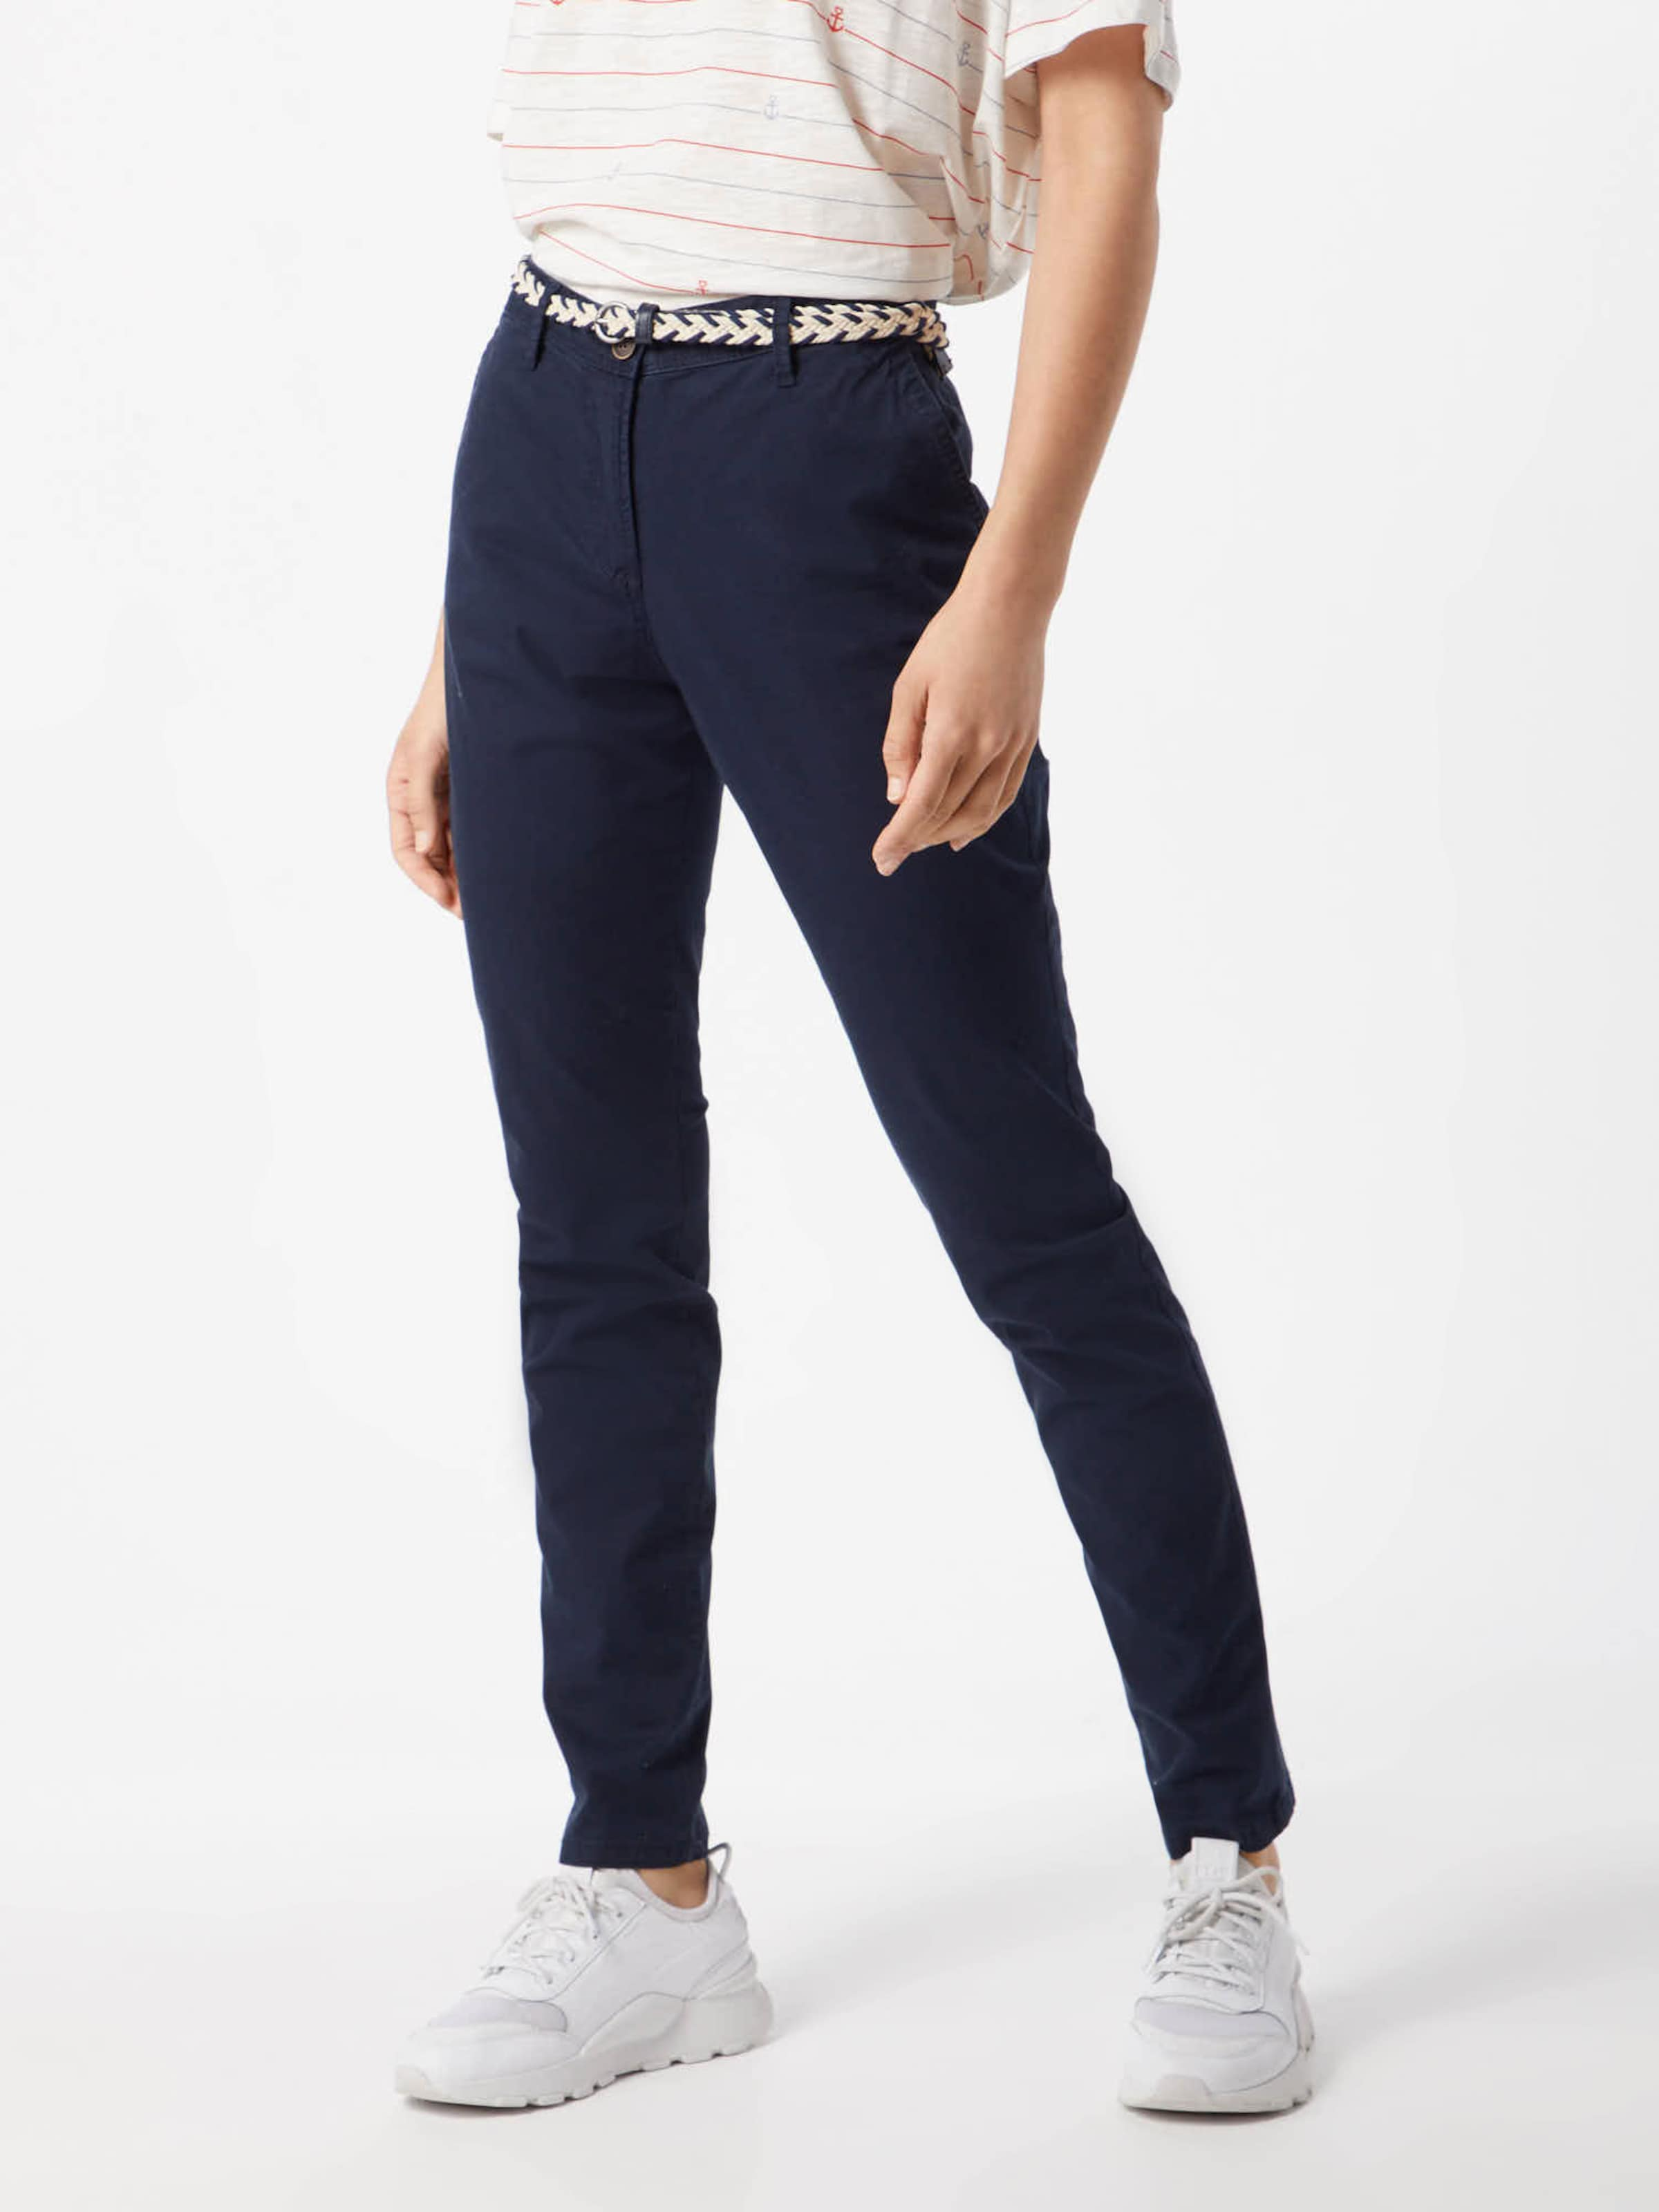 Tom Chino Chino Navy In Tailor In Tom Tailor Tom Tailor Chino Navy In FKTlc1J3